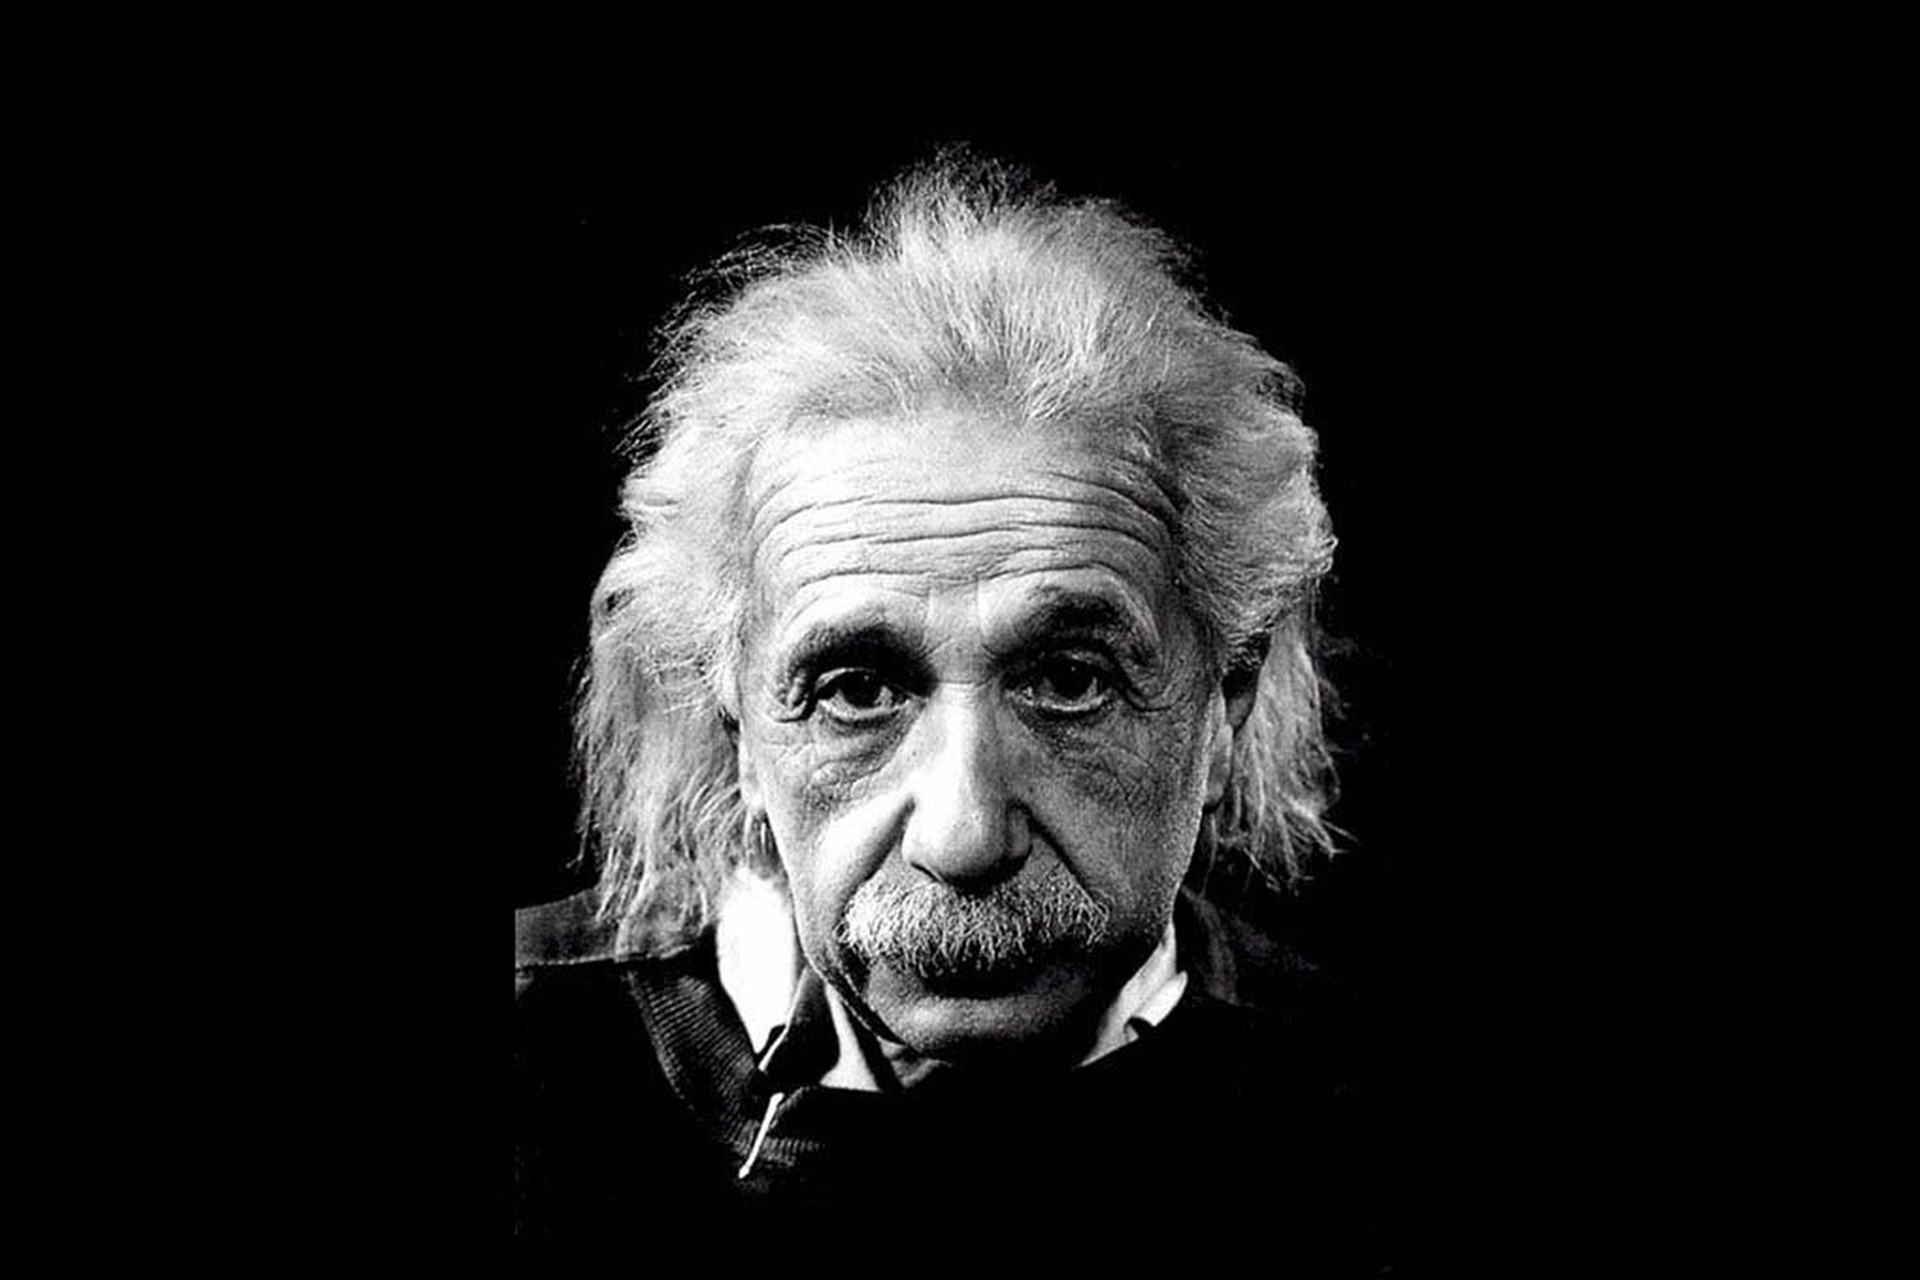 """""""The Intuitive mind is a sacred gift and the rational mind is a faithful servant. We have created a society that honors the servant and has forgotten the gift."""" - Albert Einstein"""